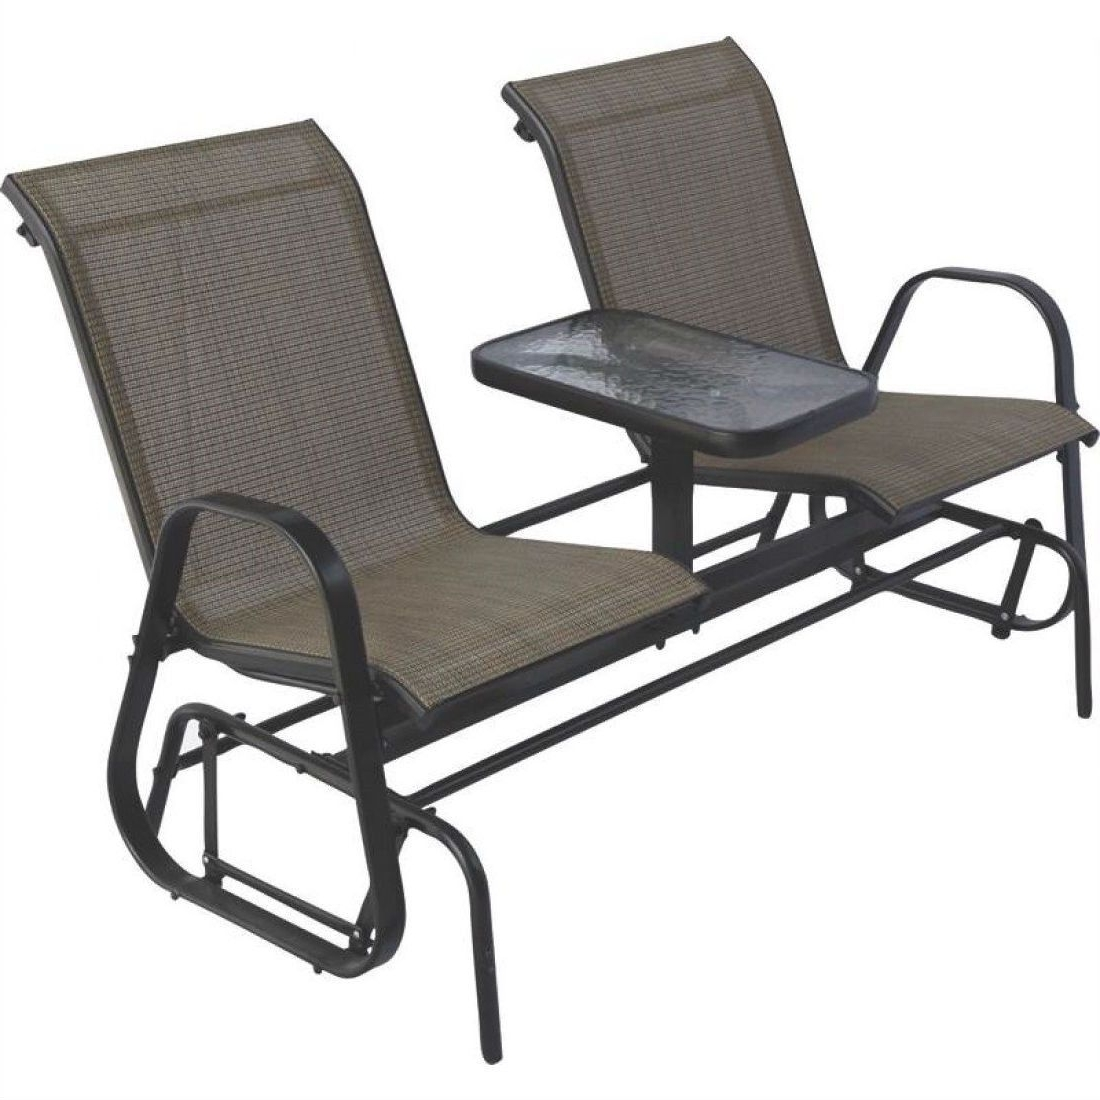 Rocking Chairs For Patio Within 2018 2 Person Outdoor Patio Furniture Glider Chairs With Console Table (View 15 of 20)